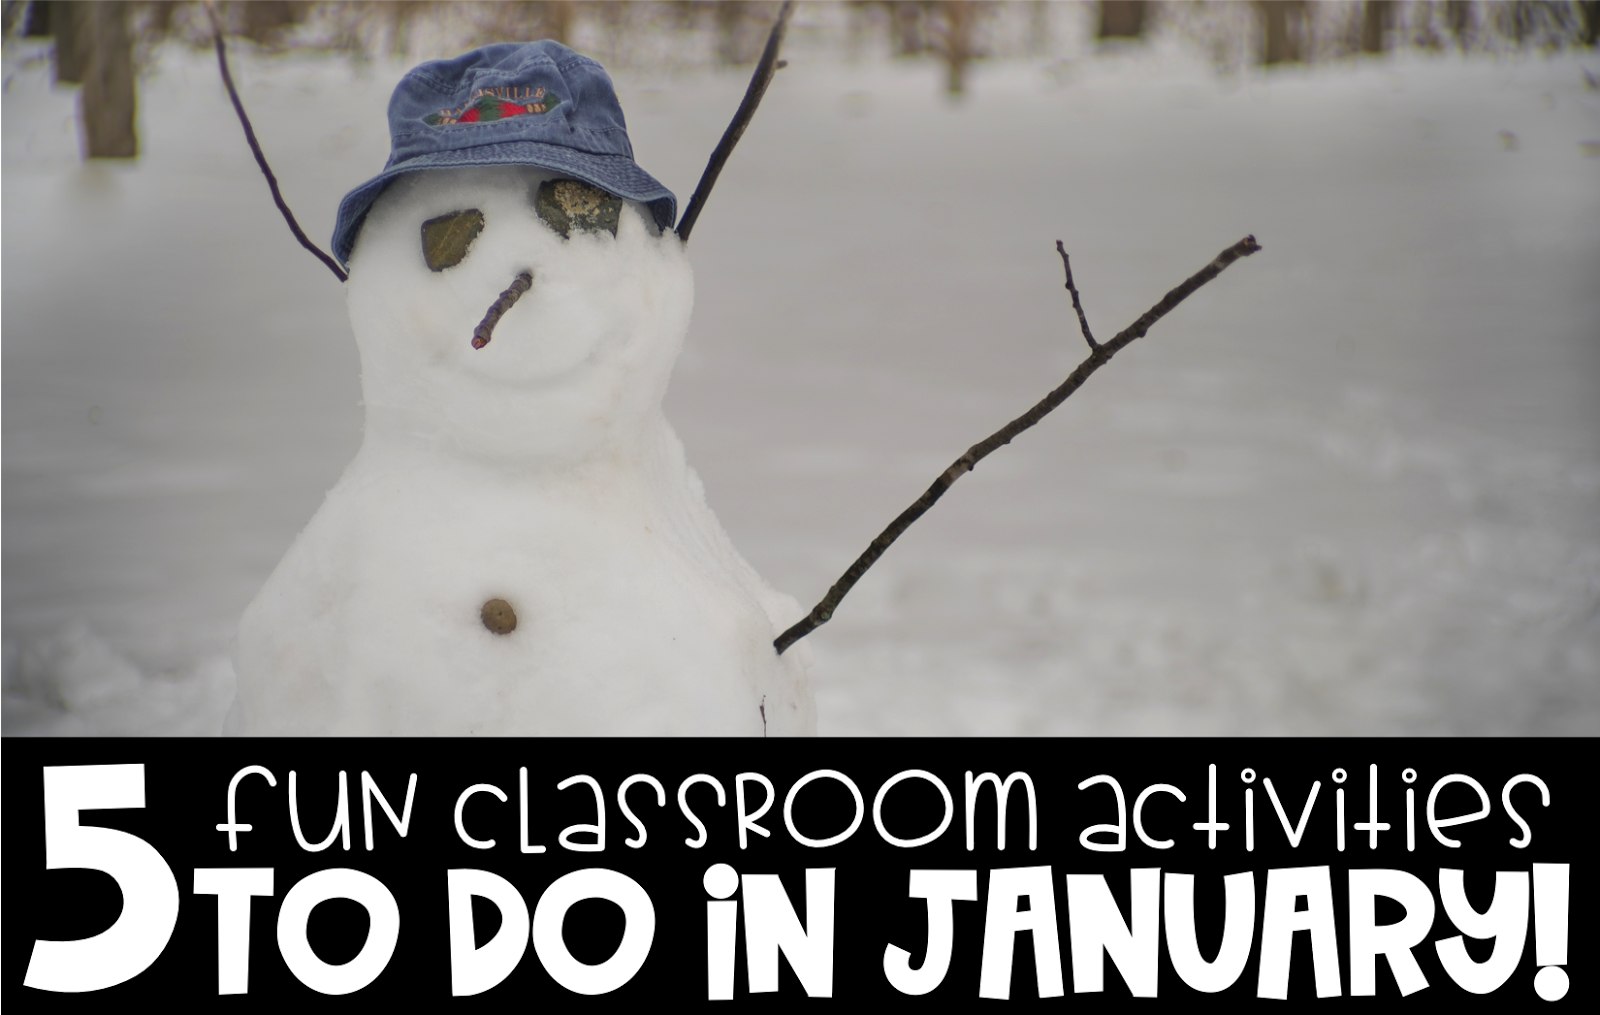 5 Fun & Free Things to Do with your Students in January